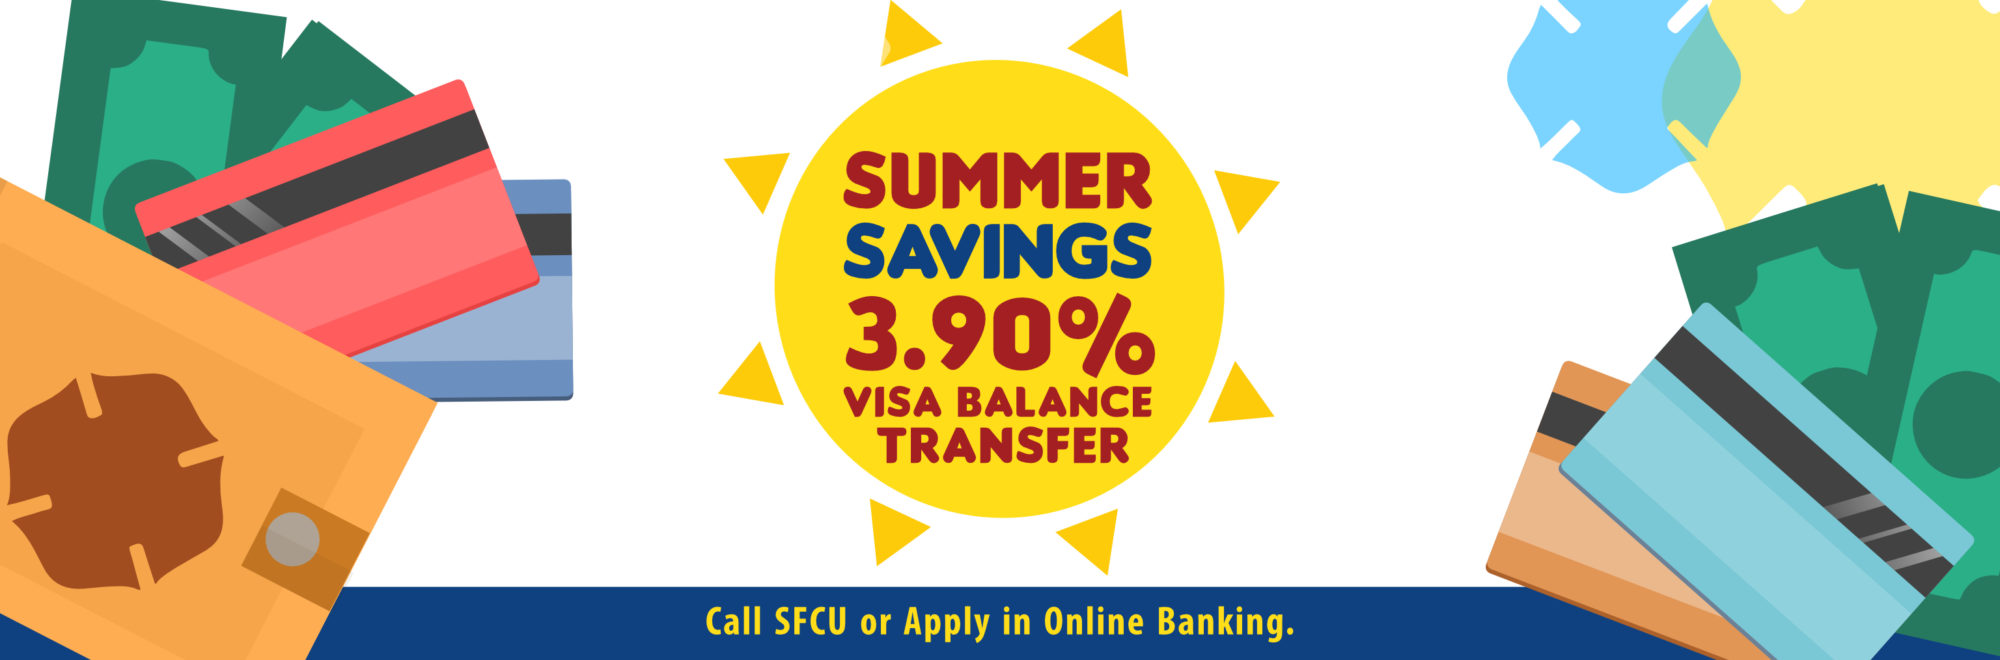 Summer Savings: Call SFCU or Apply in Online Banking for 3.90% VISA Balance Transfer